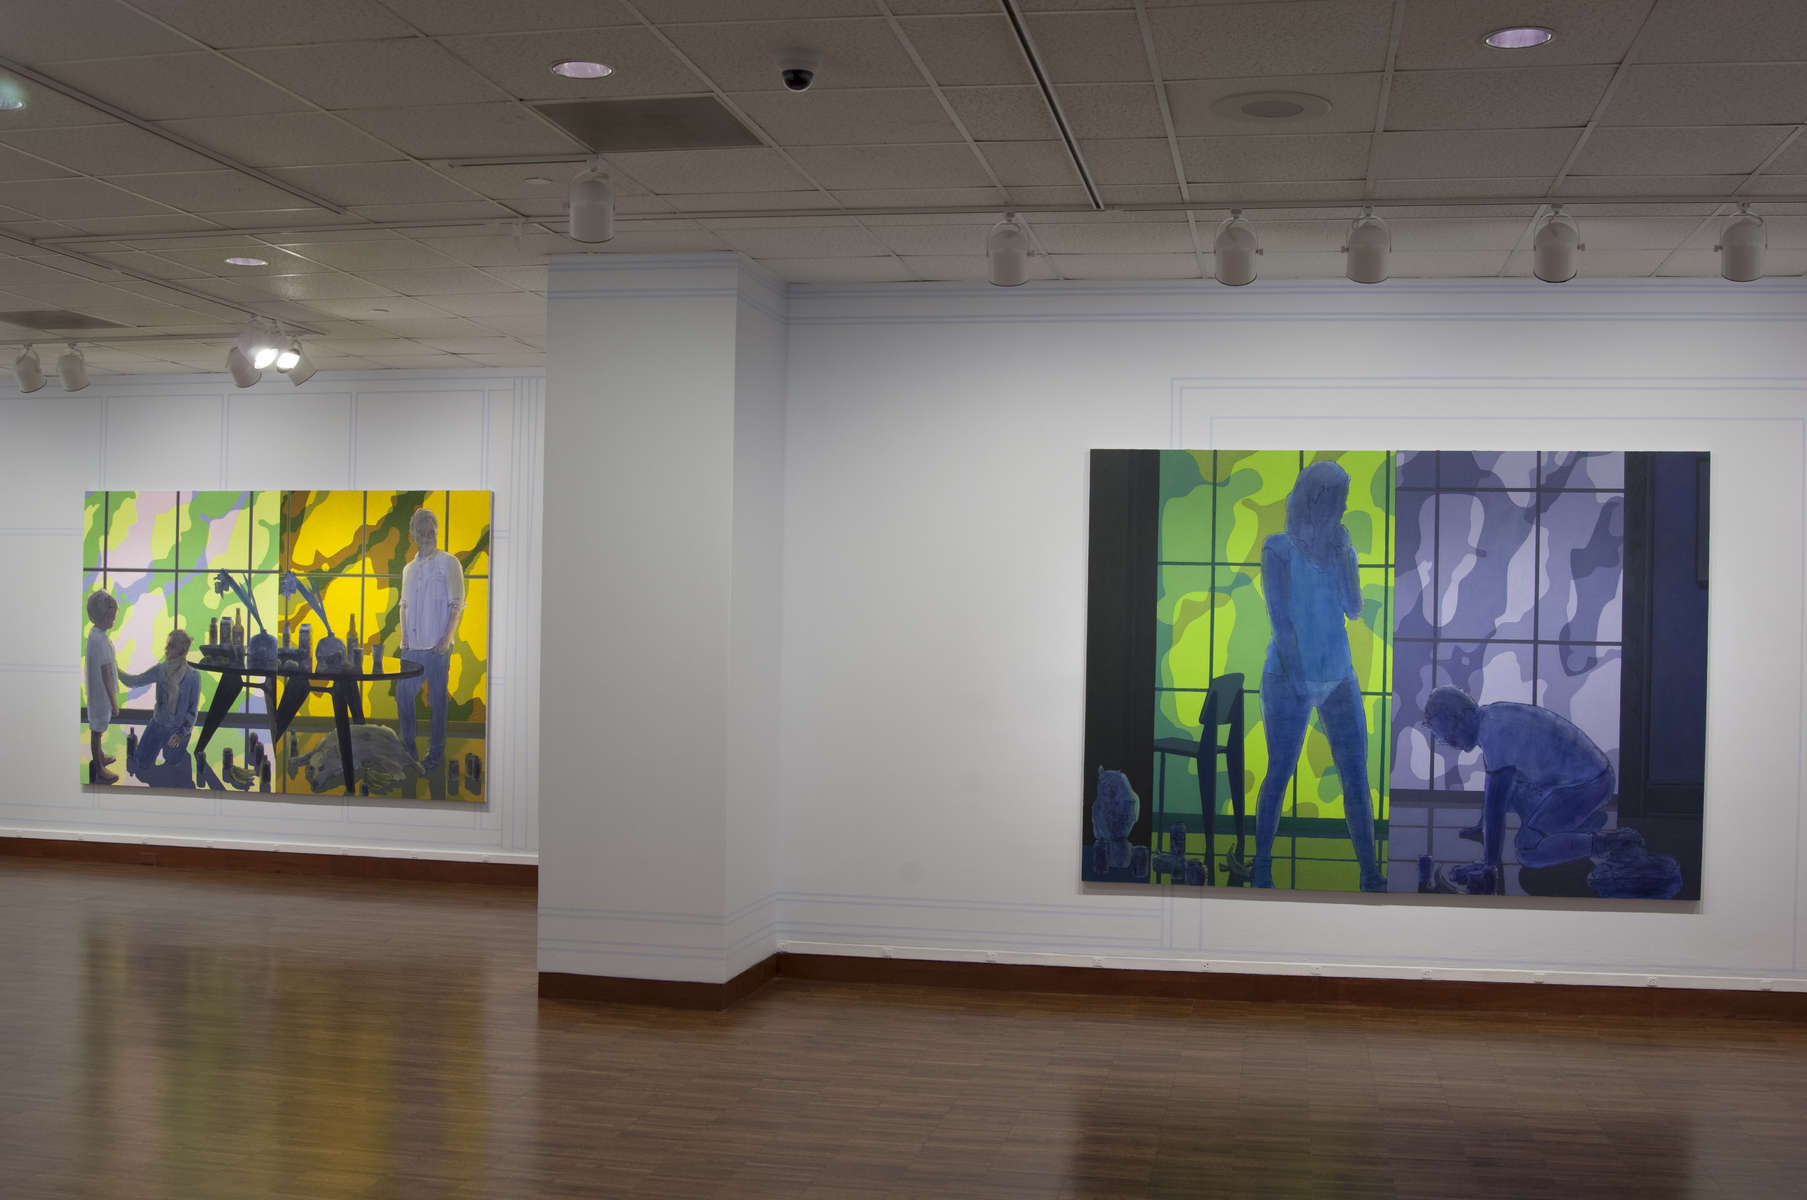 L: 72 x 108 in. R: 72 x 100 in.Acrylic, pumice, ink-jet printing on canvas